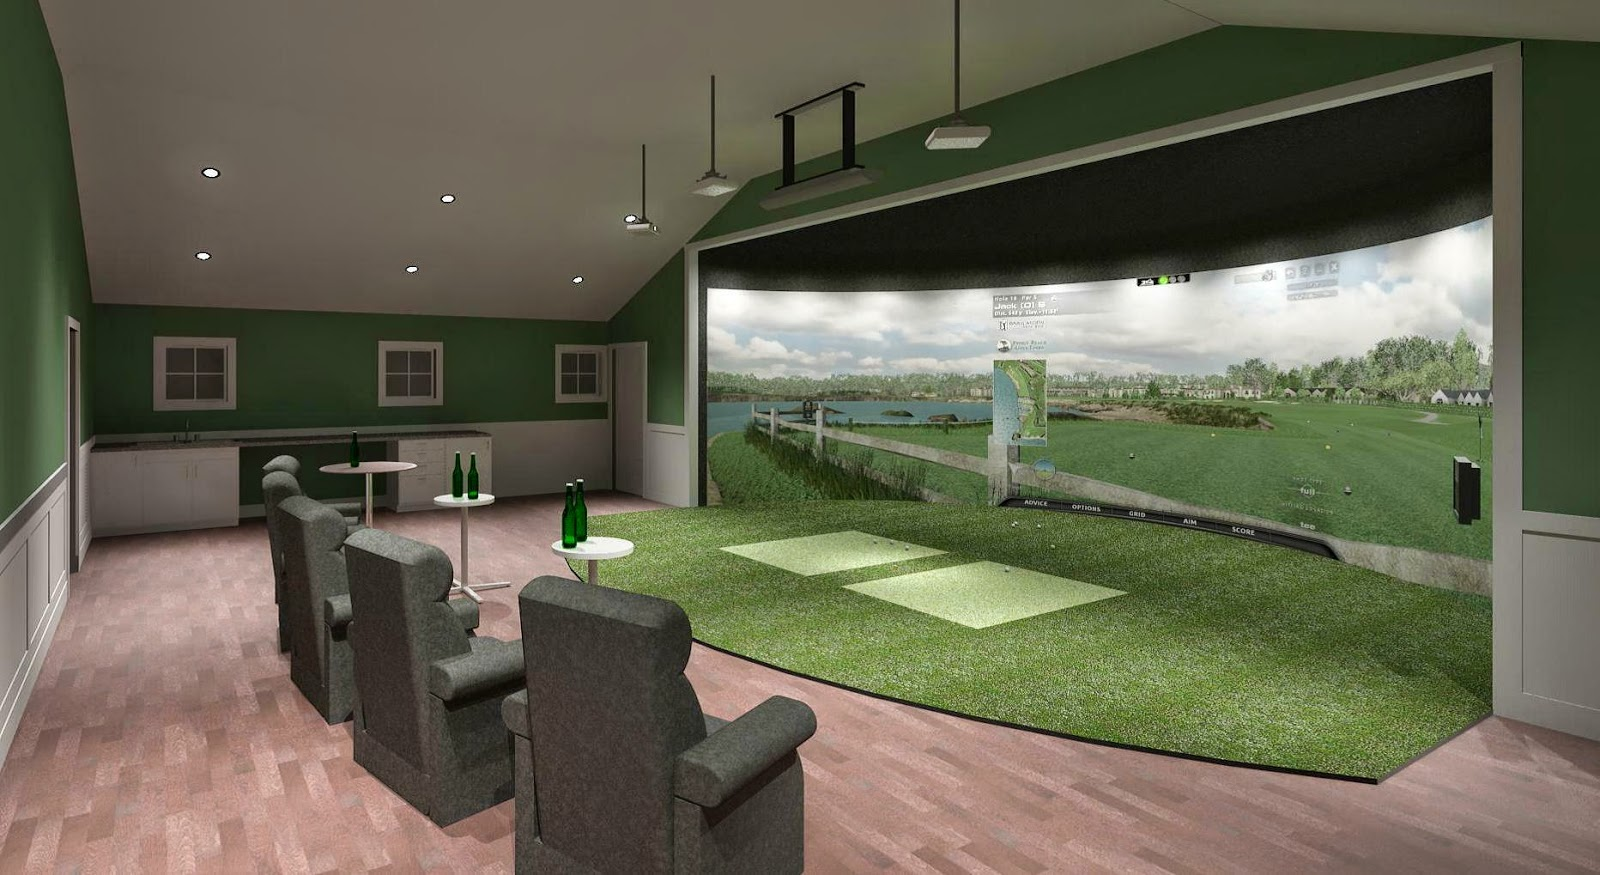 American golfer manchester cc to unveil state of the art for Golf simulator room dimensions